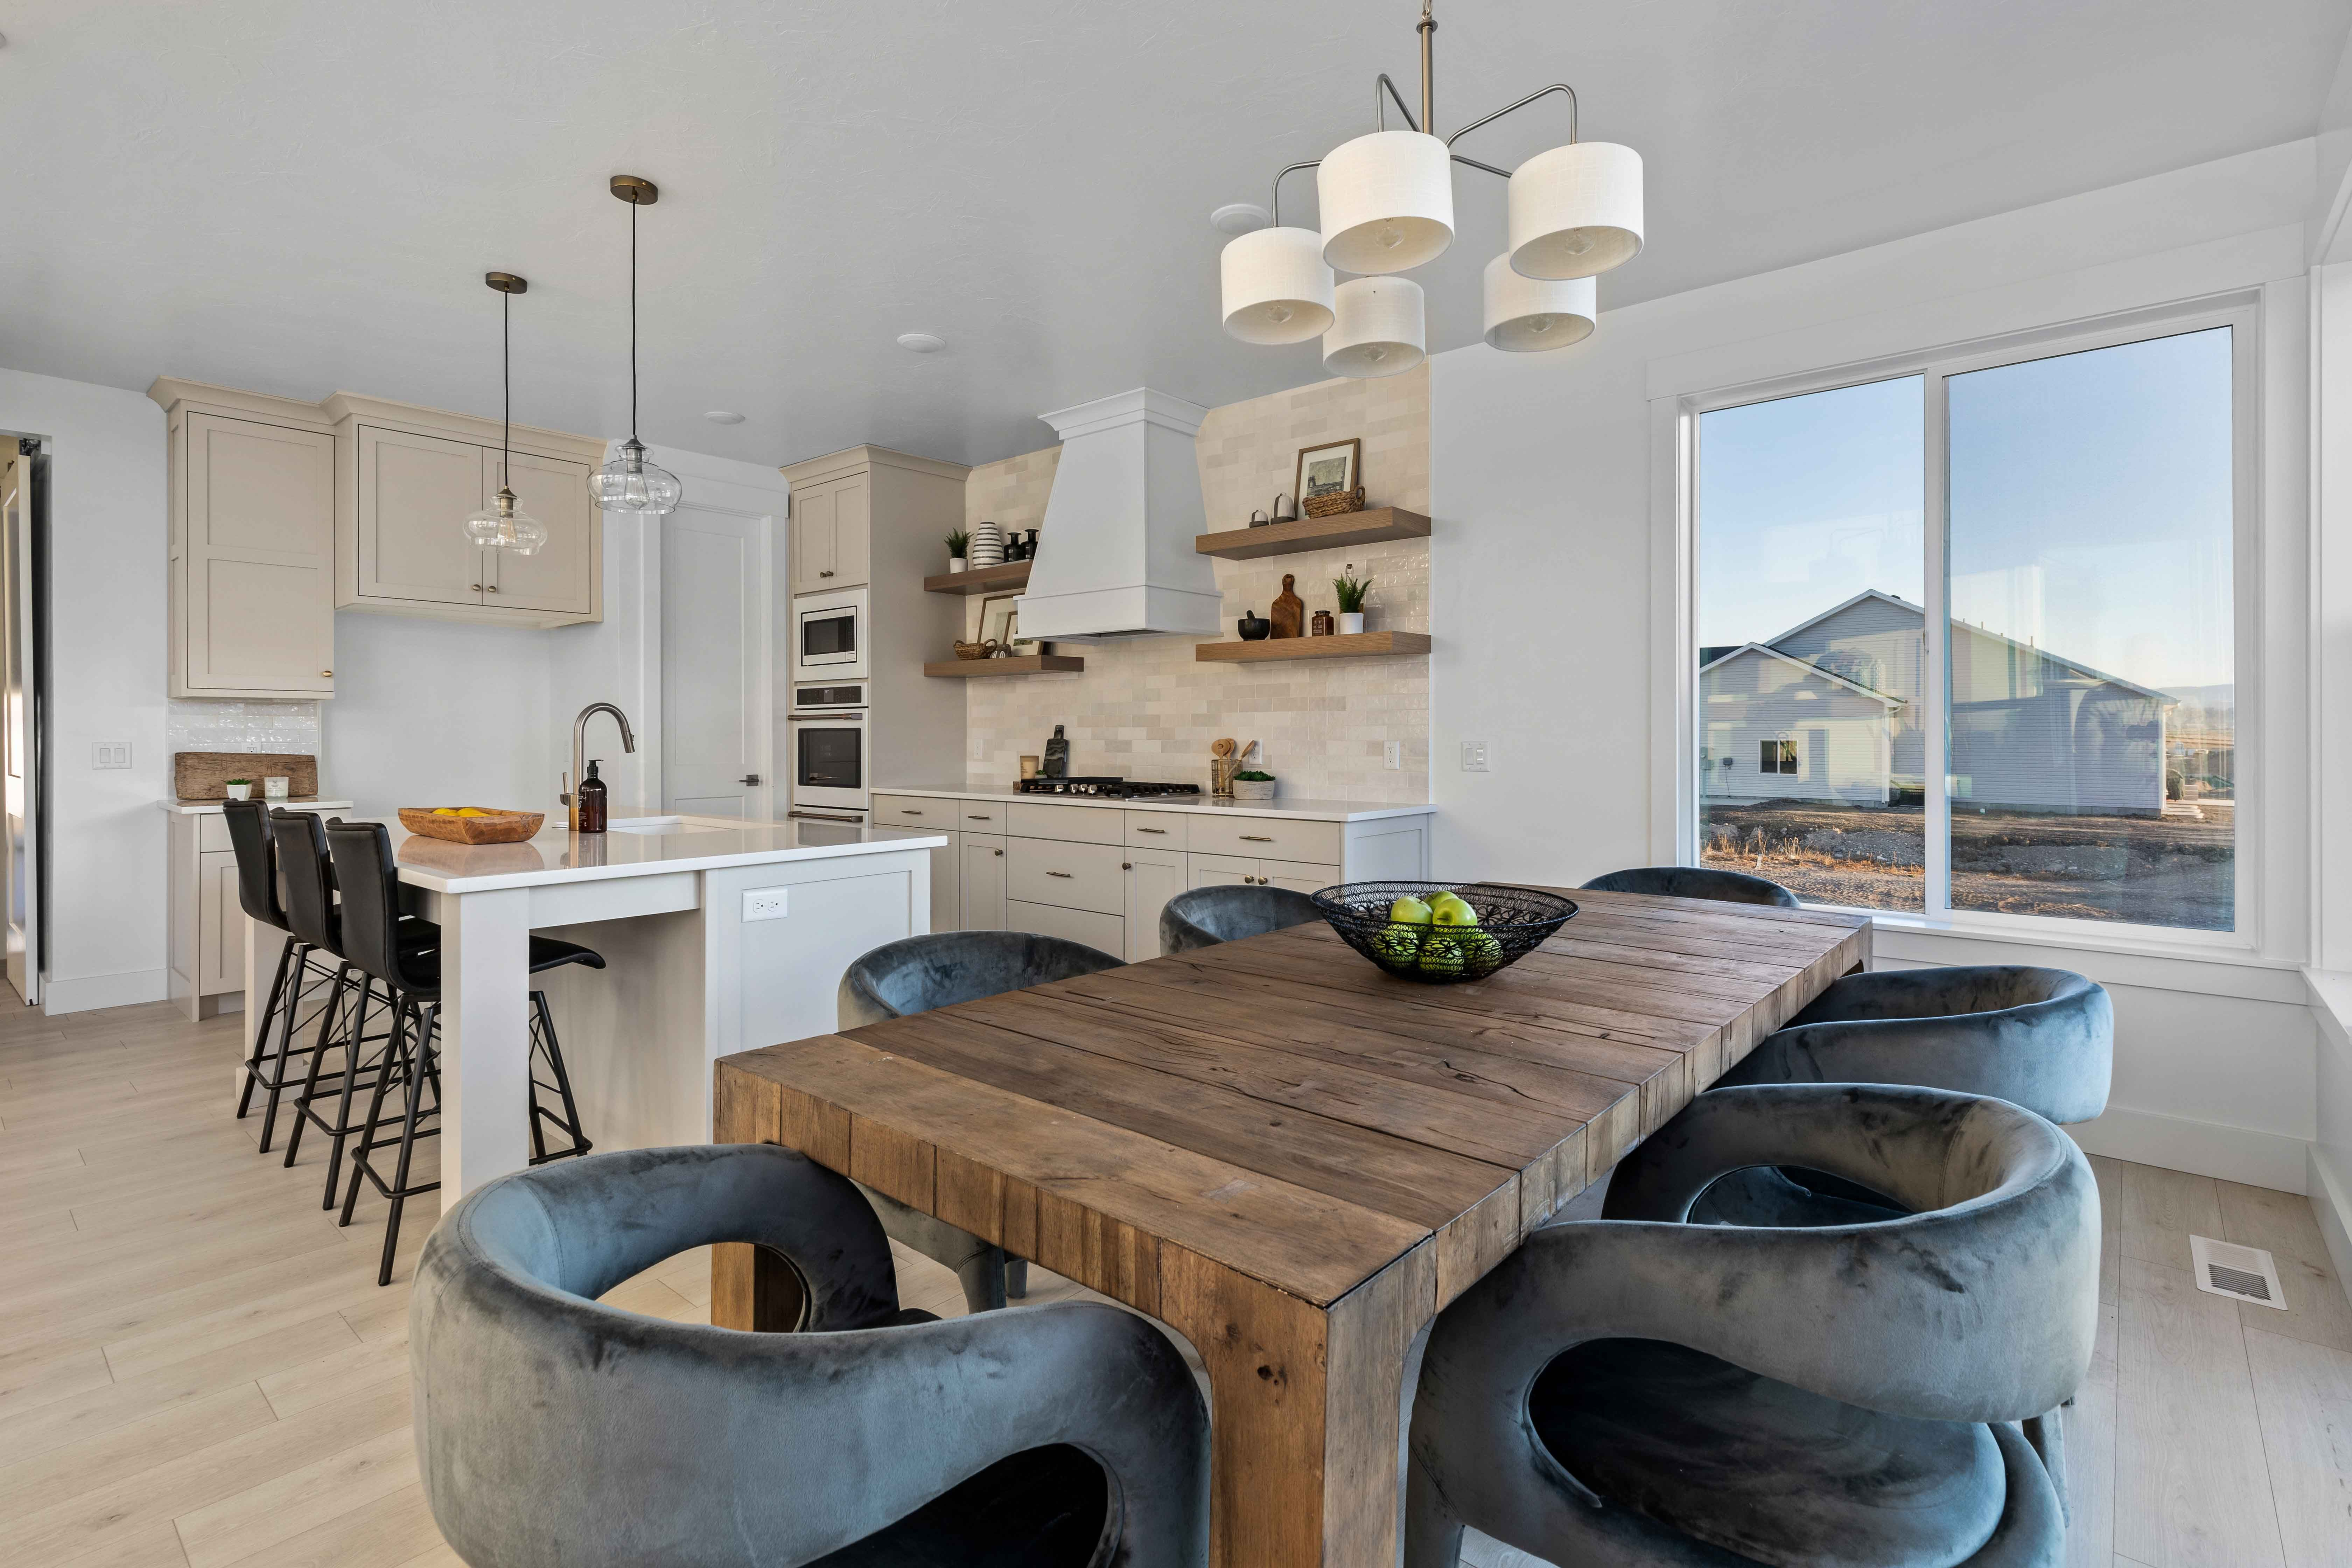 Kitchen featured in the Sumac (SOG)  By Visionary Homes in Logan, UT